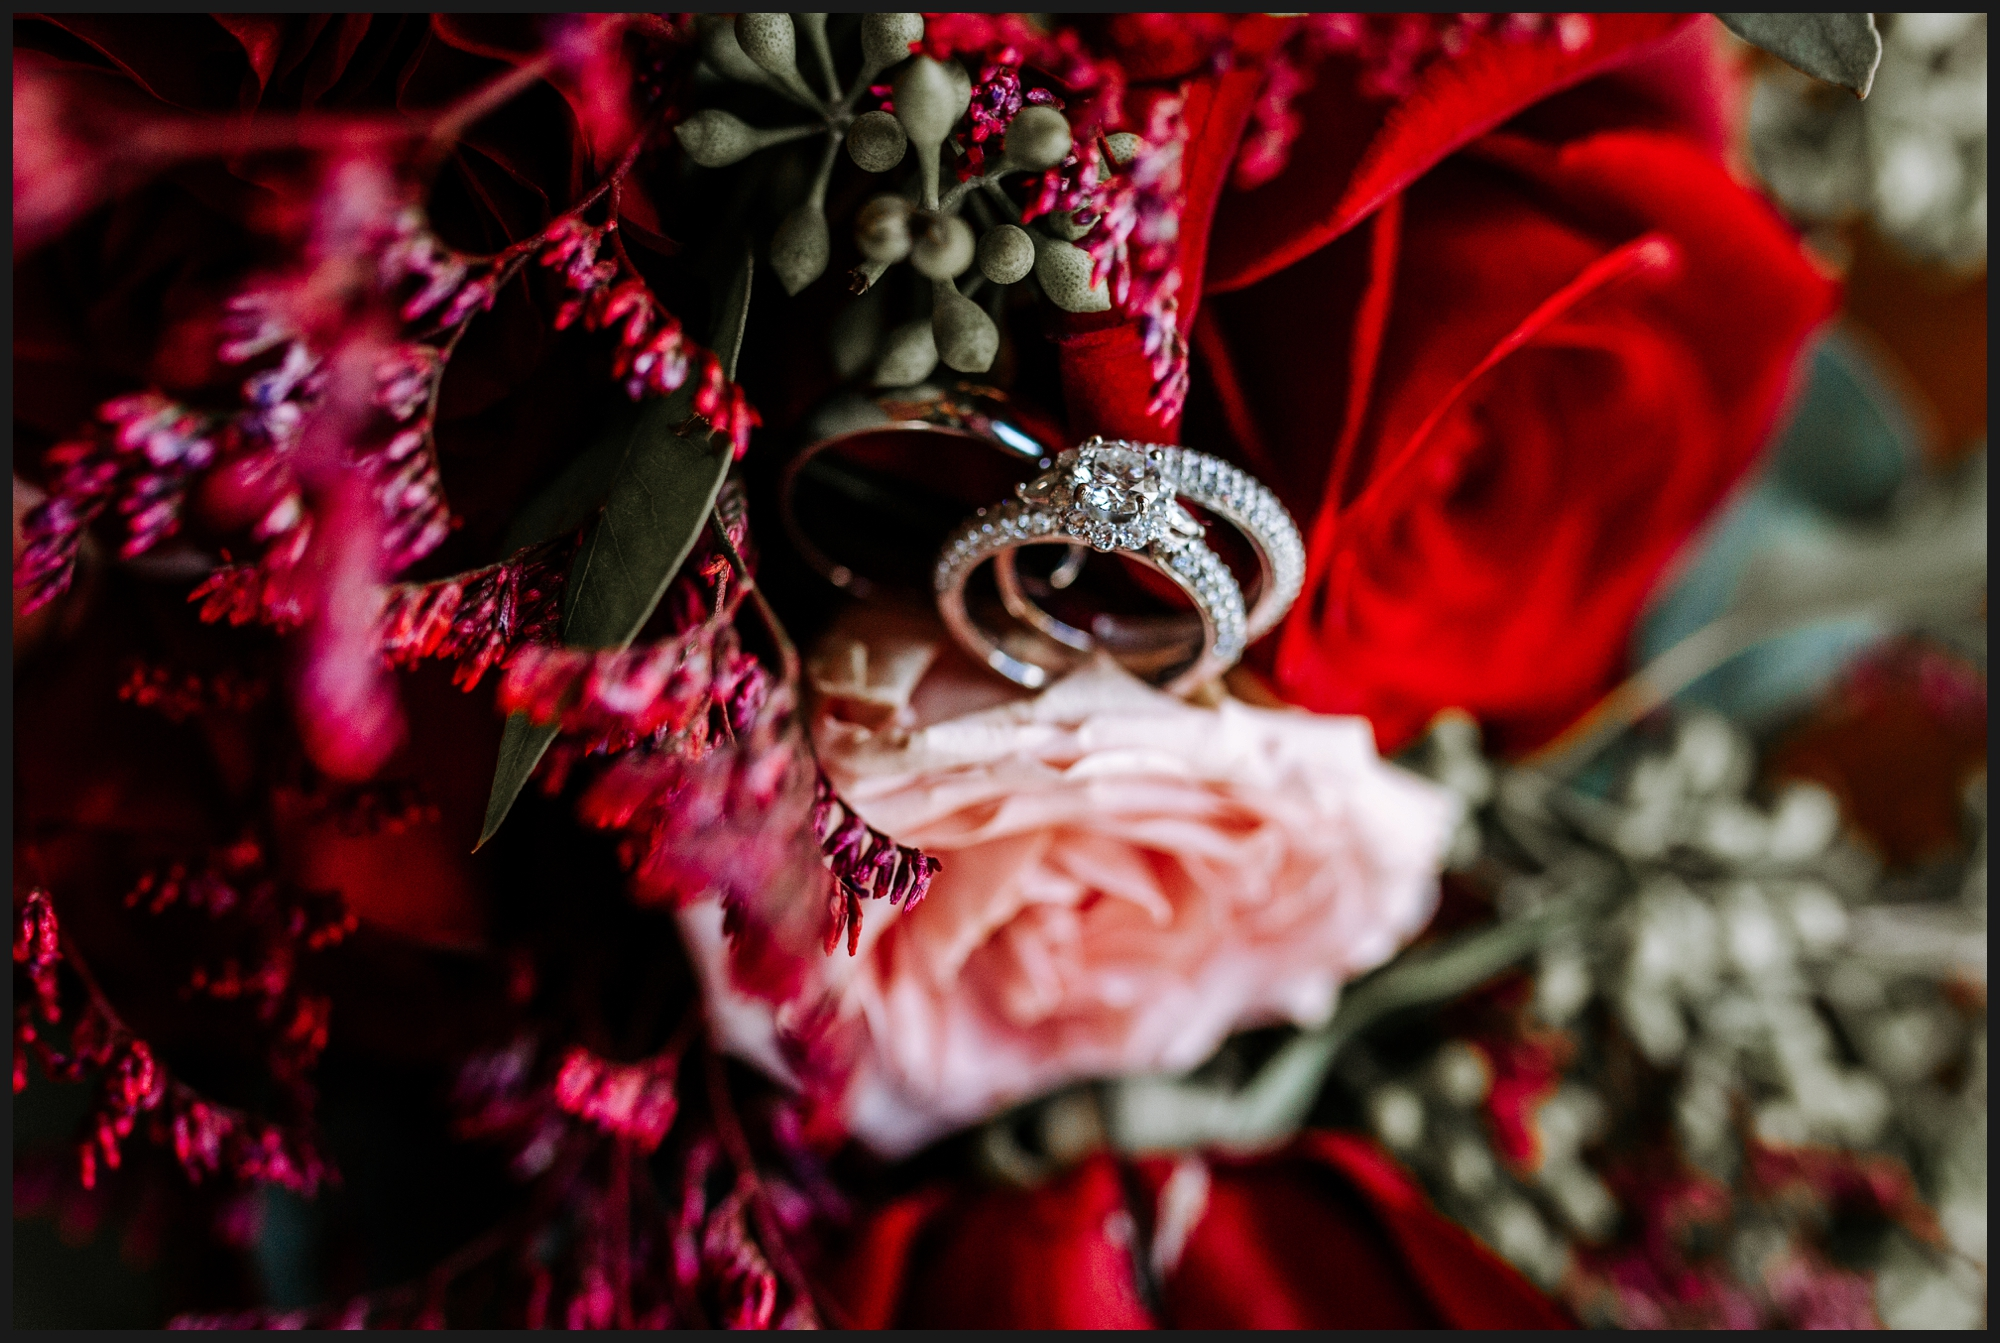 MitchandKatieOrlandoWeddingPhotographer_0021.jpg